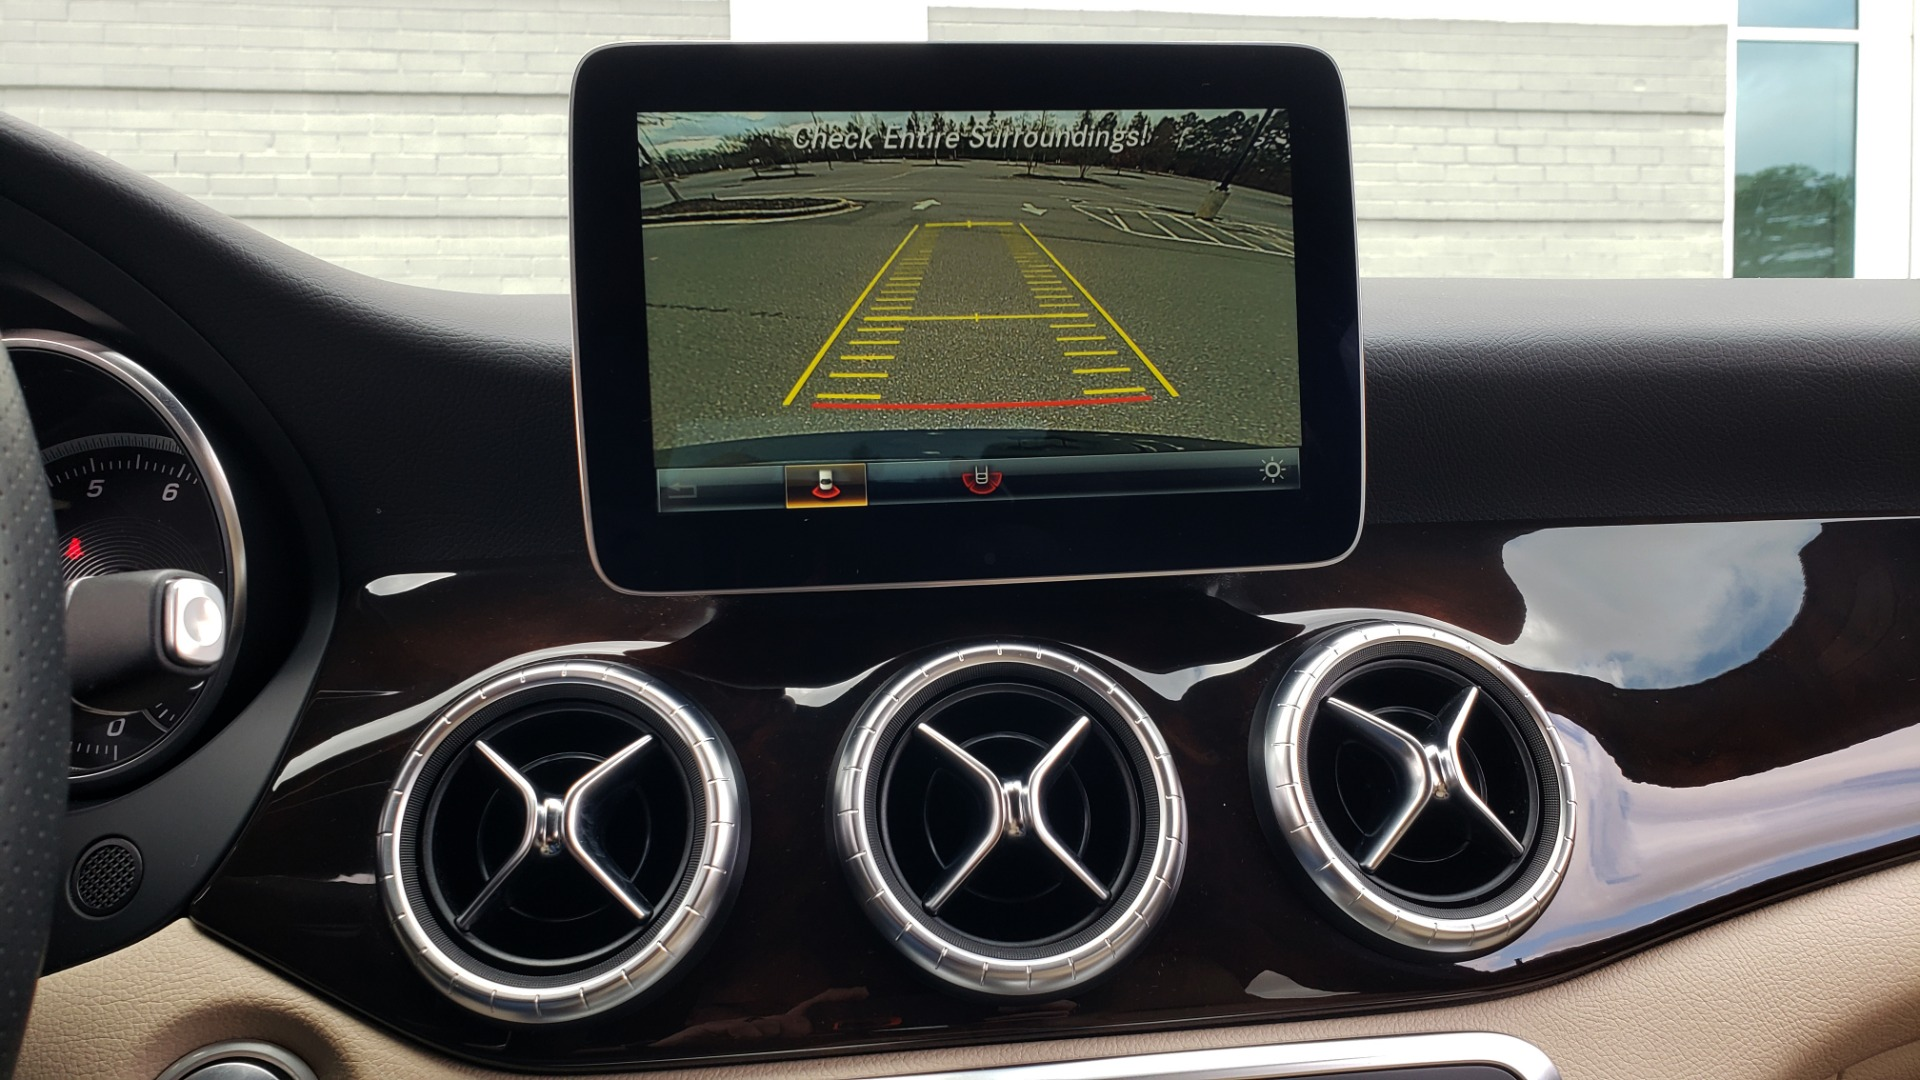 Used 2018 Mercedes-Benz CLA 250 / HEATED SEATS / BSA / APPLE CARPLAY / ANDROID AUTO / 18IN WHEEL for sale $24,195 at Formula Imports in Charlotte NC 28227 43